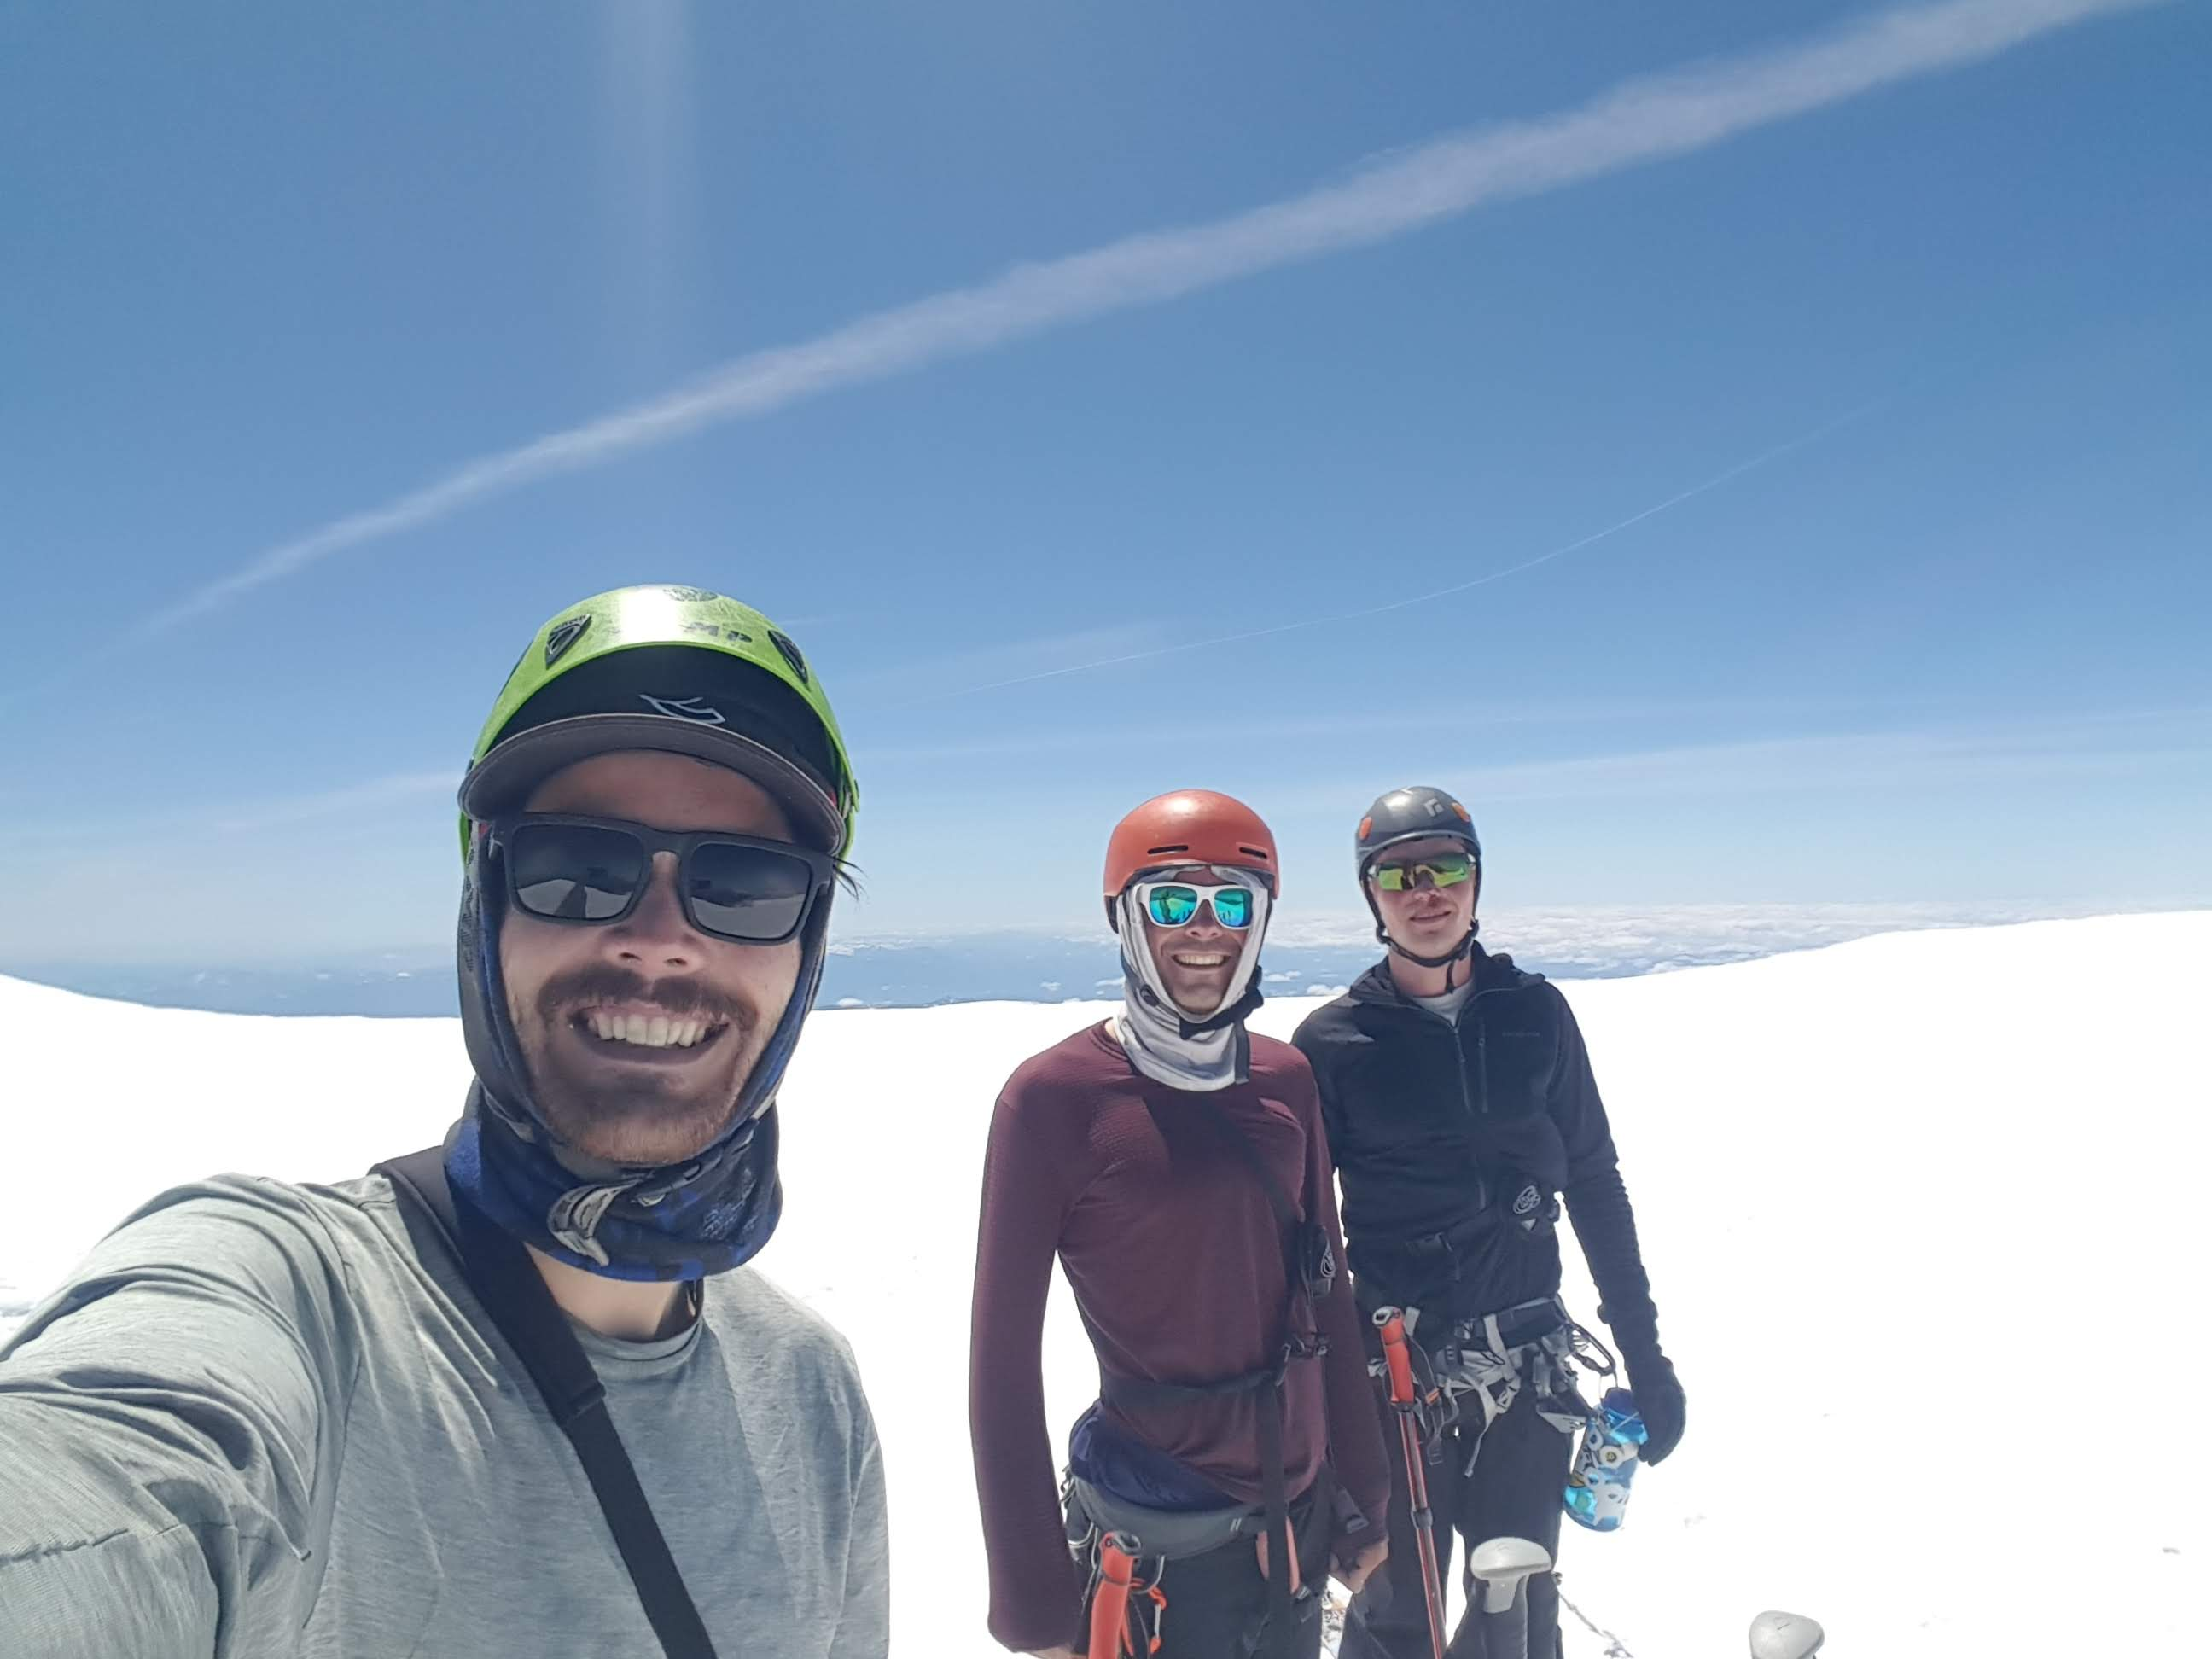 Summit selfie - as you do. From left to right, Duncan, Tobias, Justin. Photo cred: Duncan Pawson